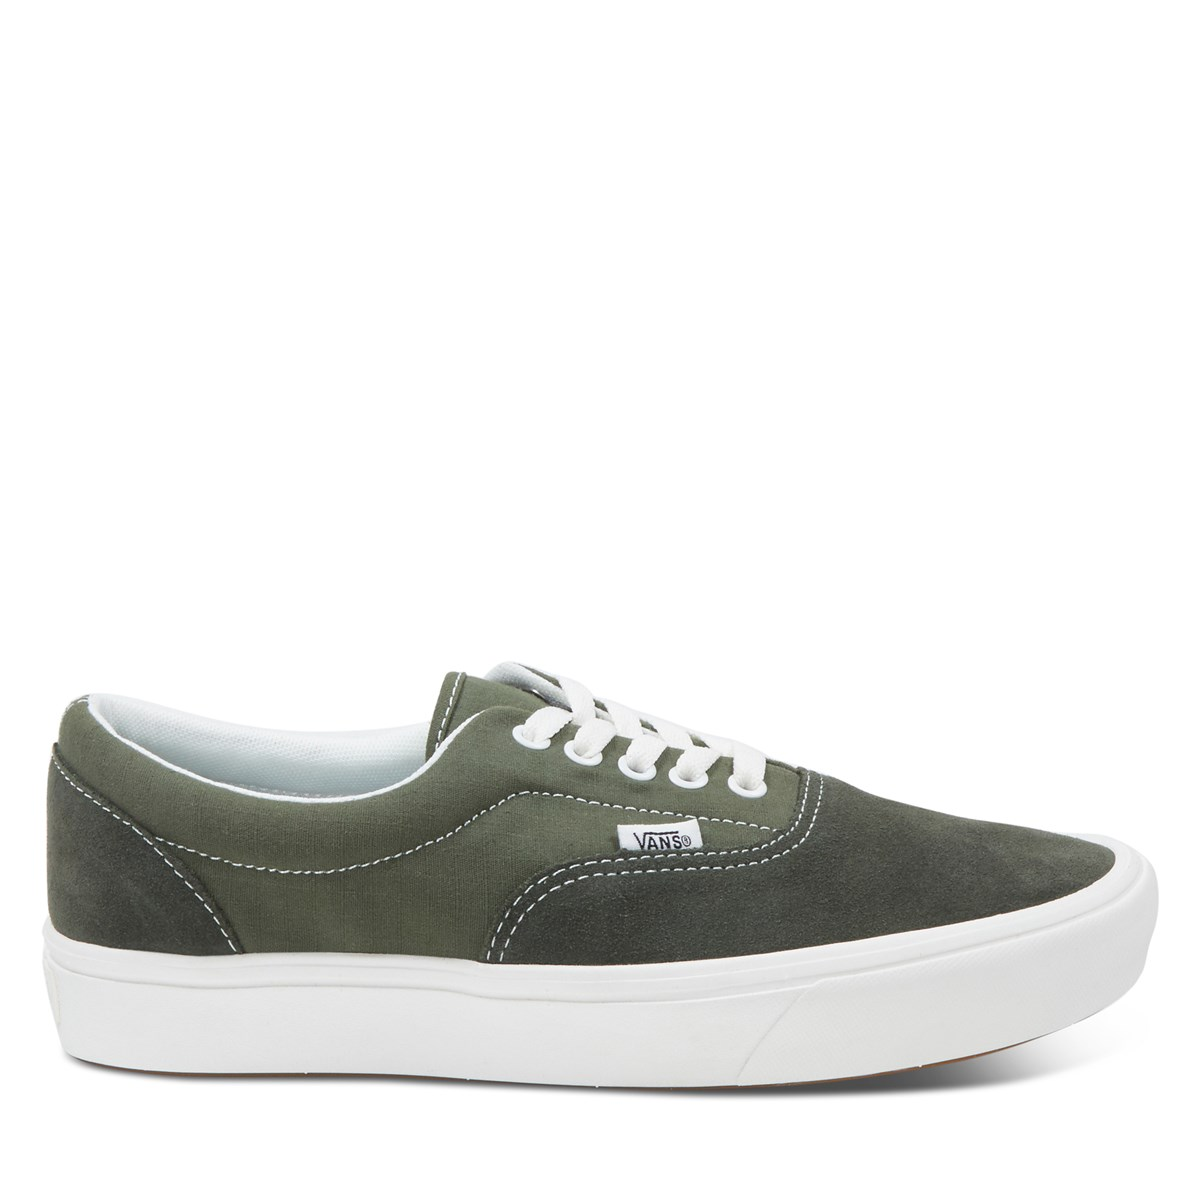 Men's ComfyCush Era Sneakers in Forest Green